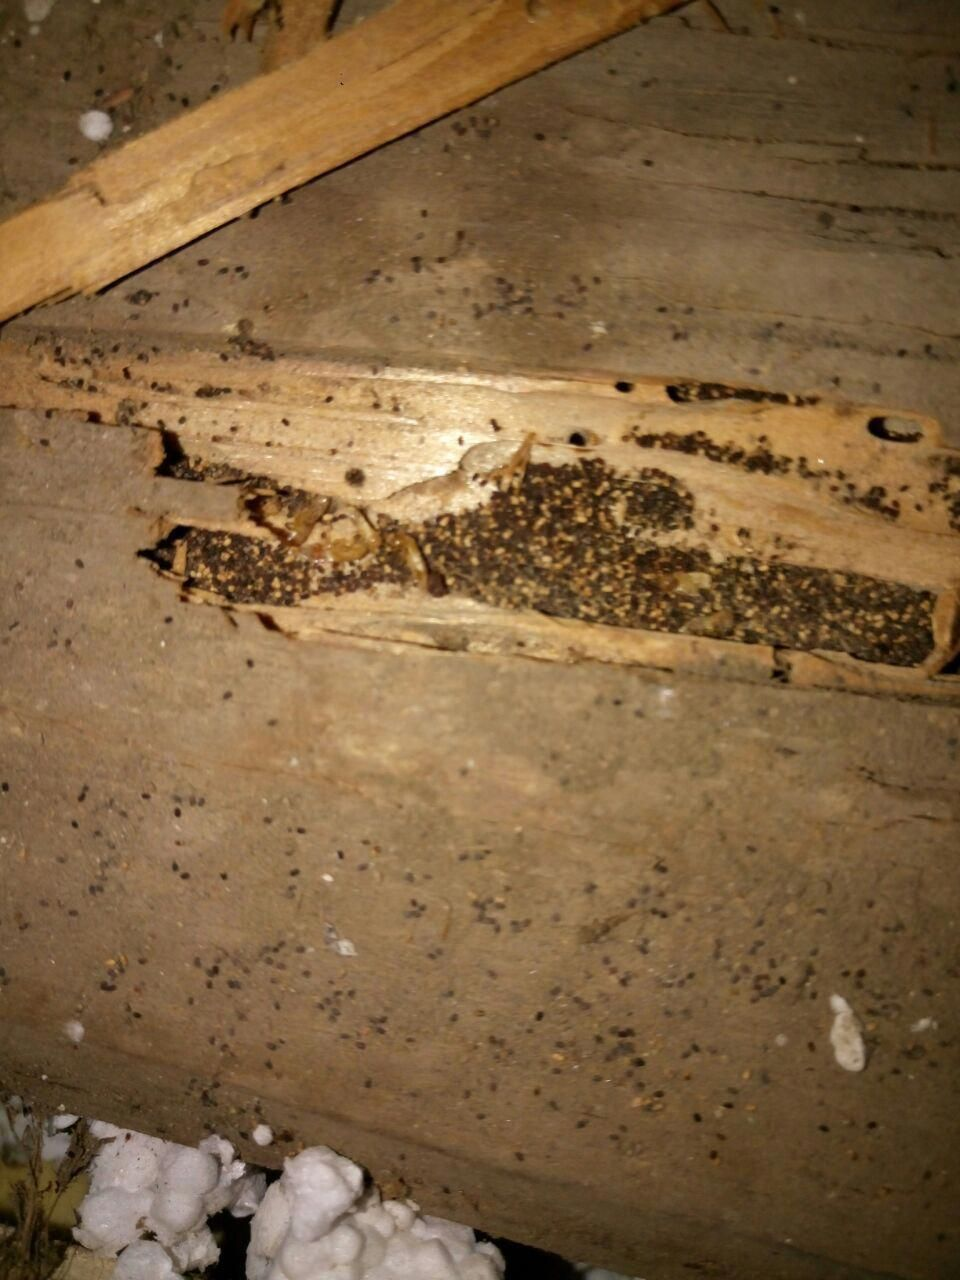 Here You Can See A Location Infested By Drywood Termites Aka Woodborer We Were Able To Enter The Location A Termite Treatment Drywood Termites Termite Control